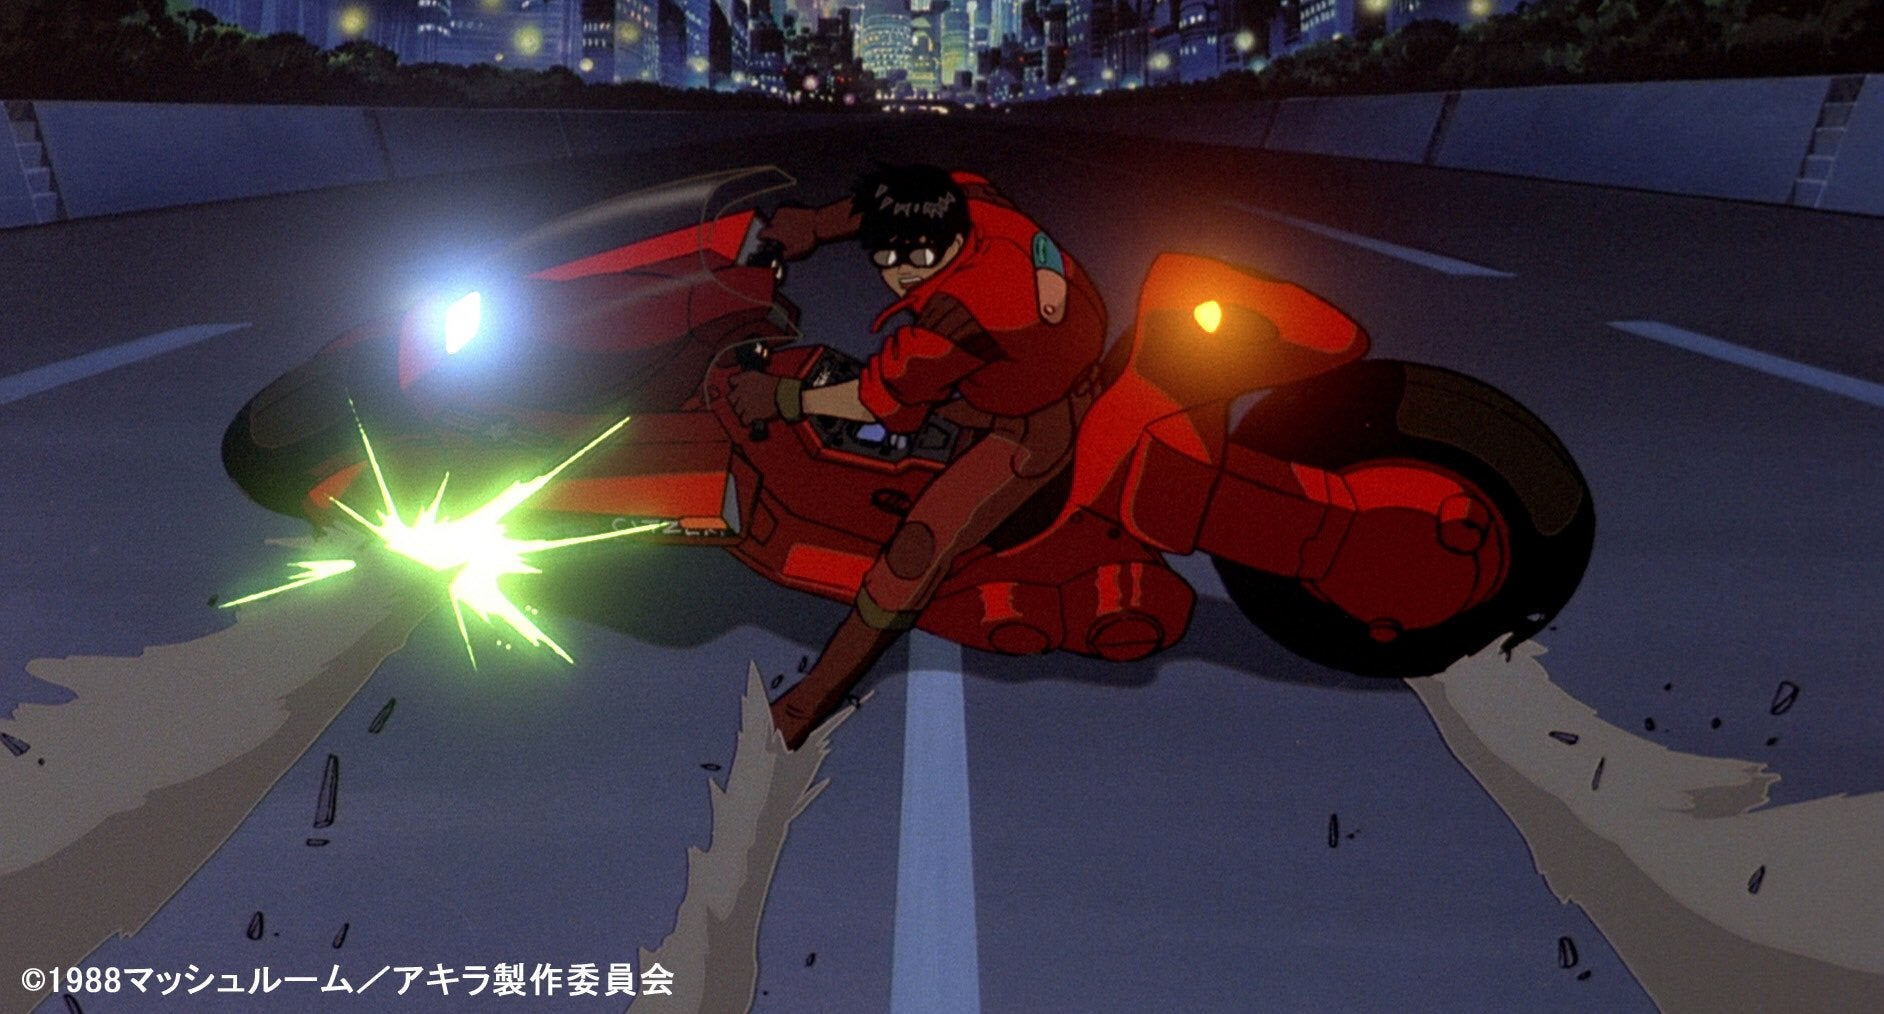 The Tokyo Olympics Is Embracing The Akira Anime